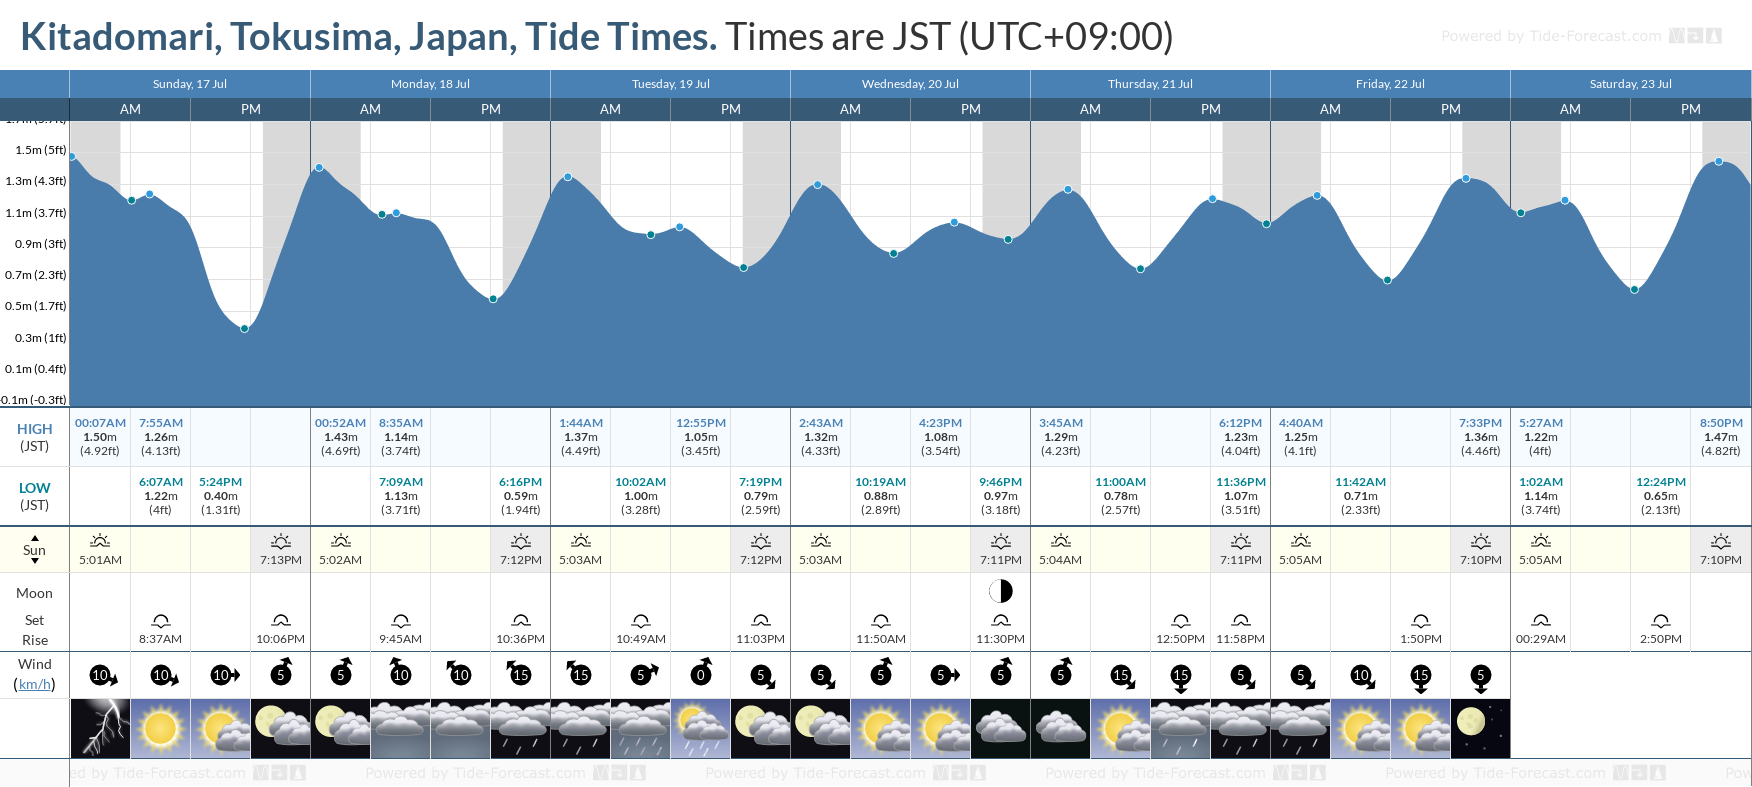 Kitadomari, Tokusima, Japan Tide Chart including high and low tide tide times for the next 7 days